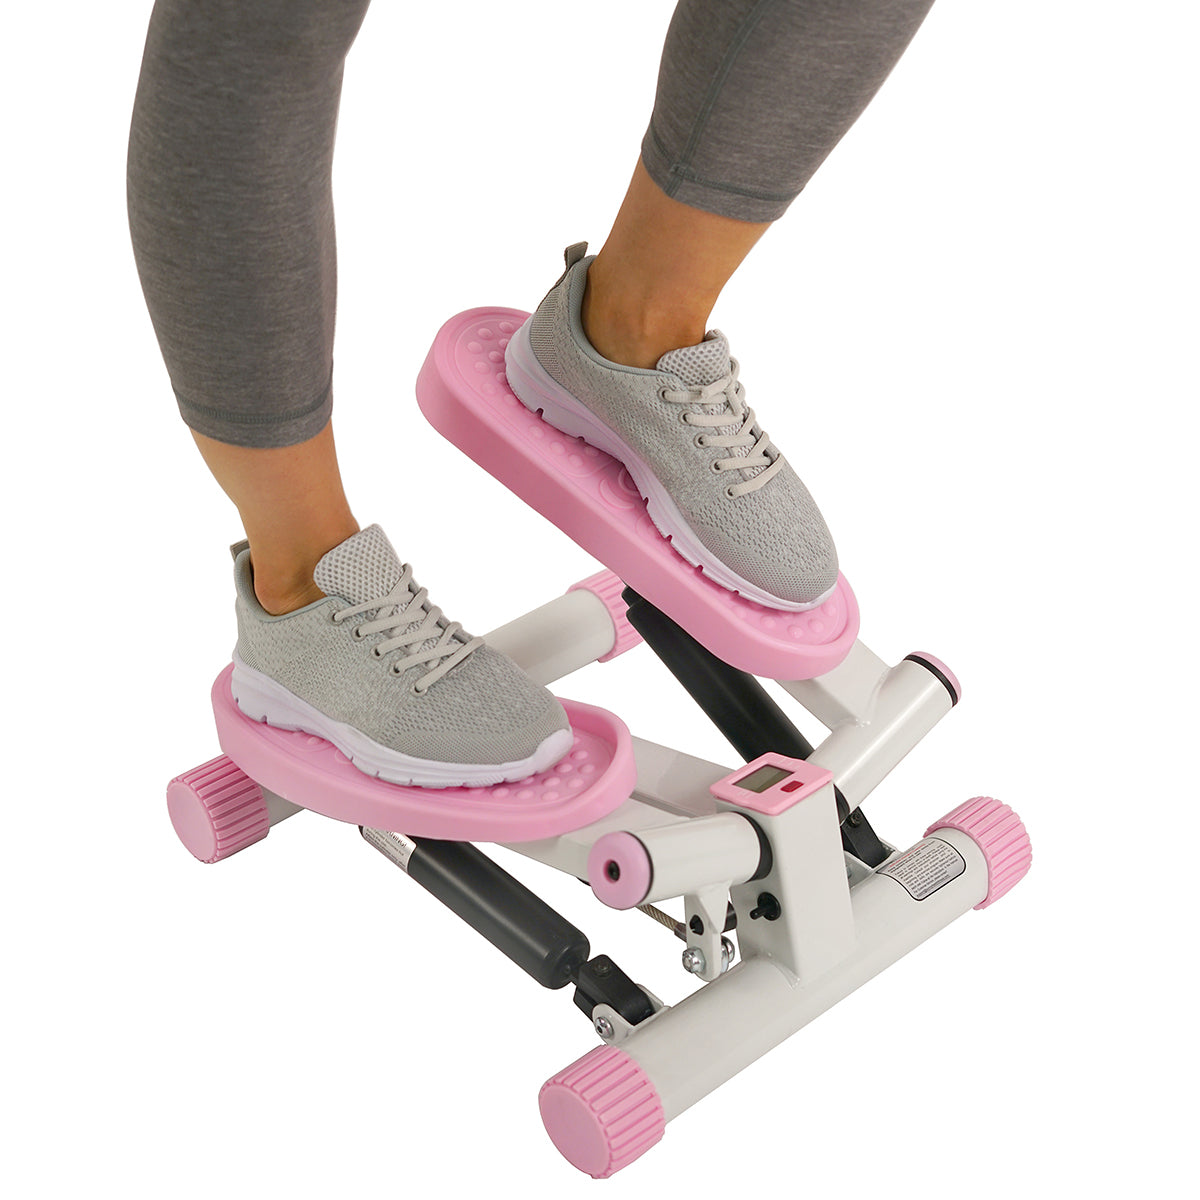 sunny-health-fitness-steppers-pink-adjustable-twist-stepper-machine-LCD-monitor-P8000-adjustable